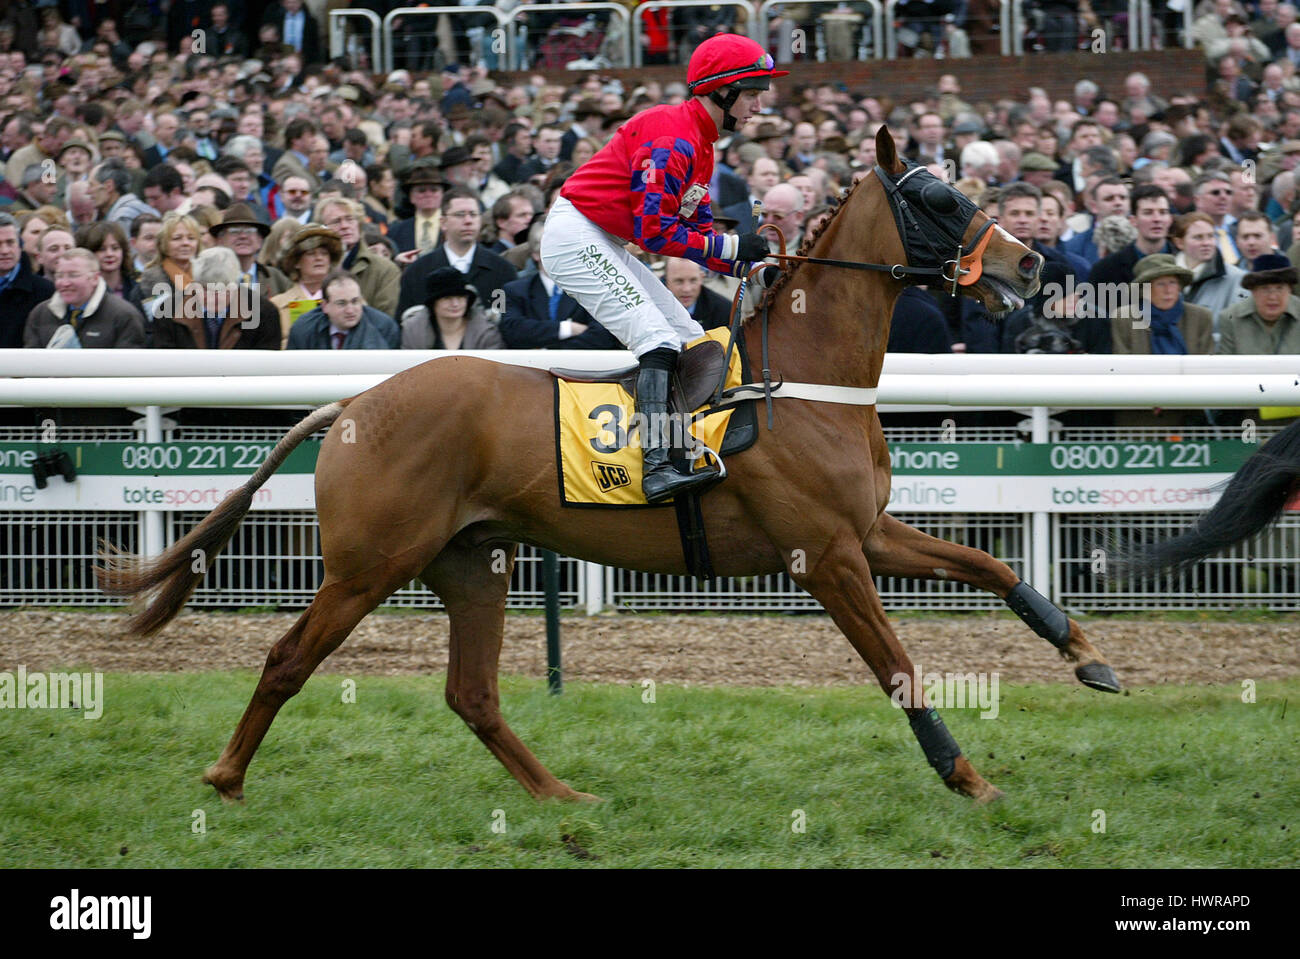 ANALOGY RIDDEN BY N.FEHILY CHELTENHAM RACECOURSE CHELTENHAM ENGLAND 18 March 2004 - Stock Image